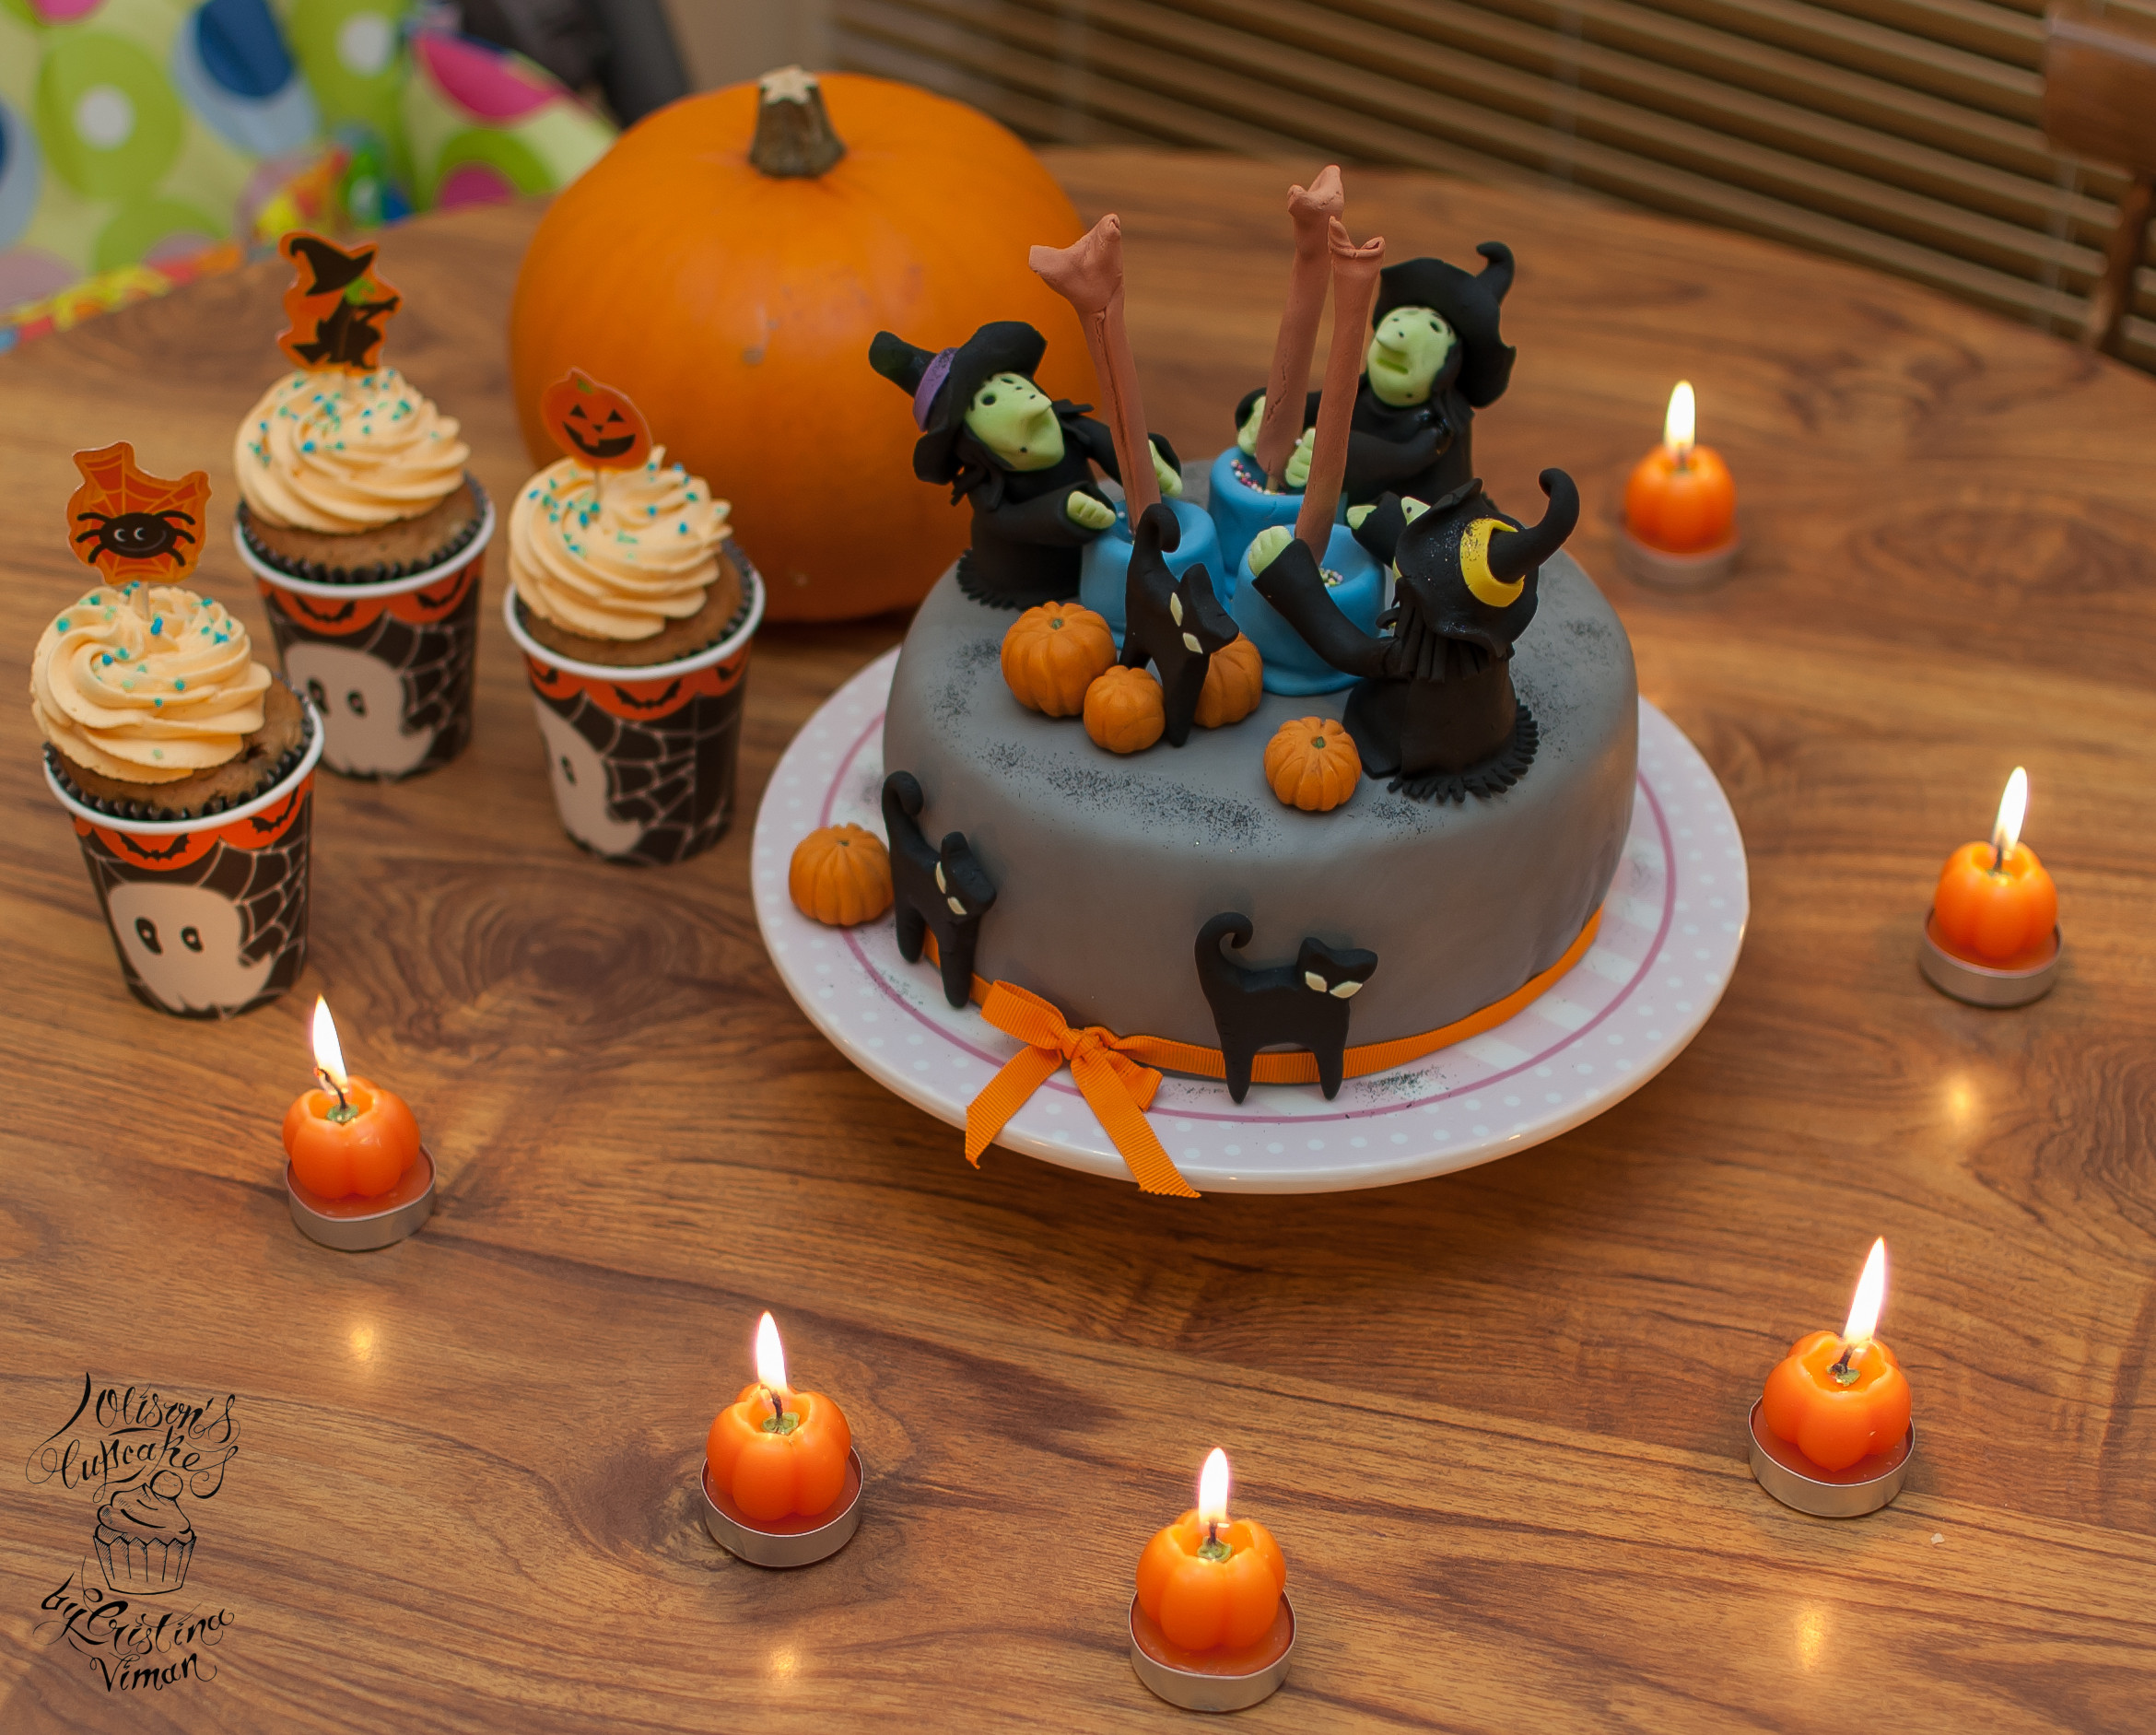 Halloween Themed Cupcakes  Halloween Wicked Witches Cake and Cupcakes – Olison s Cupcakes